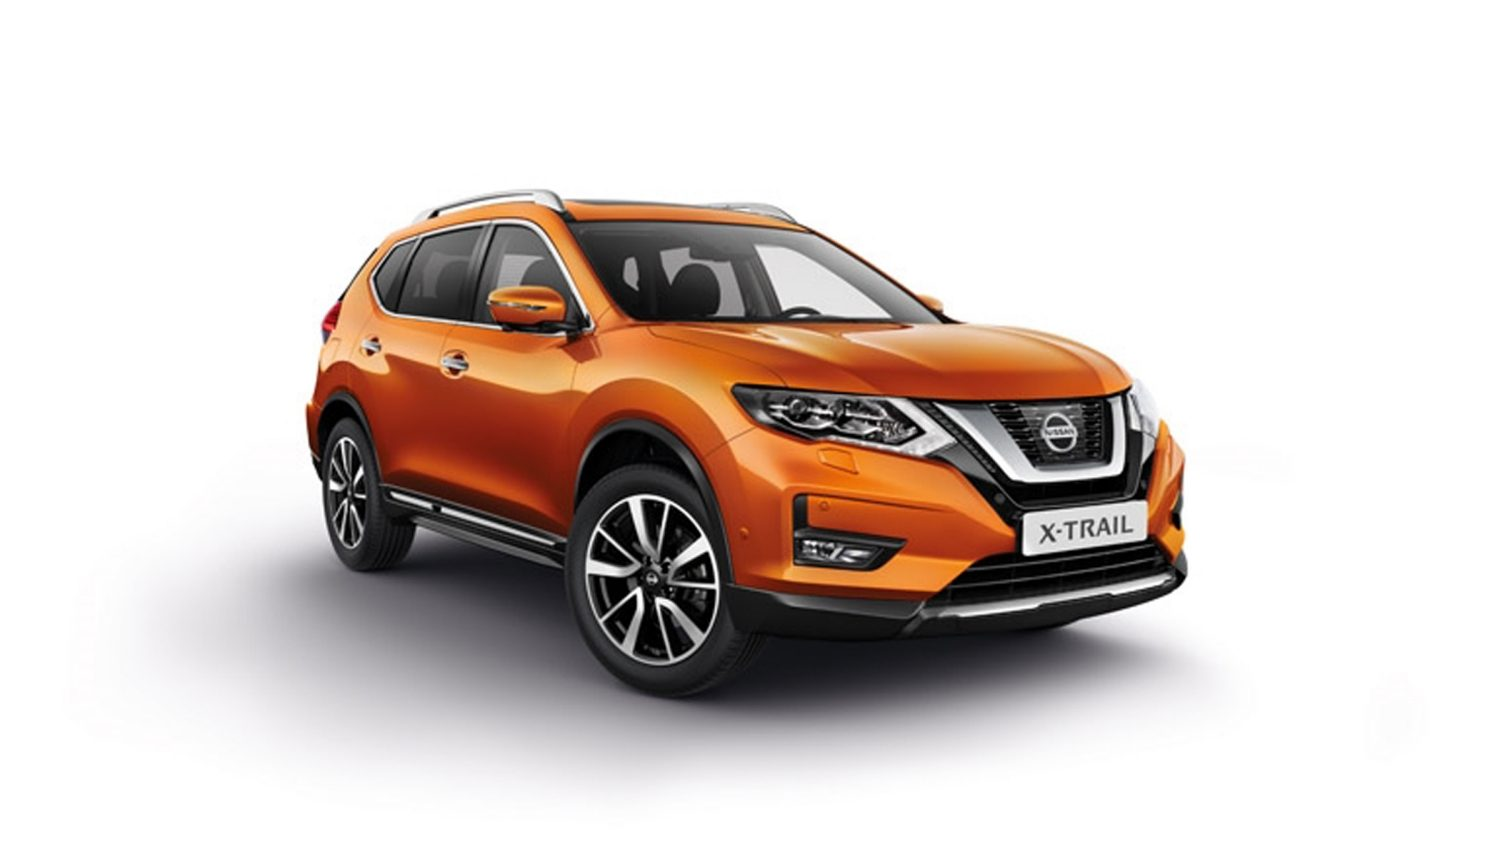 Nissan X-TRAIL, plano frontal 3/4